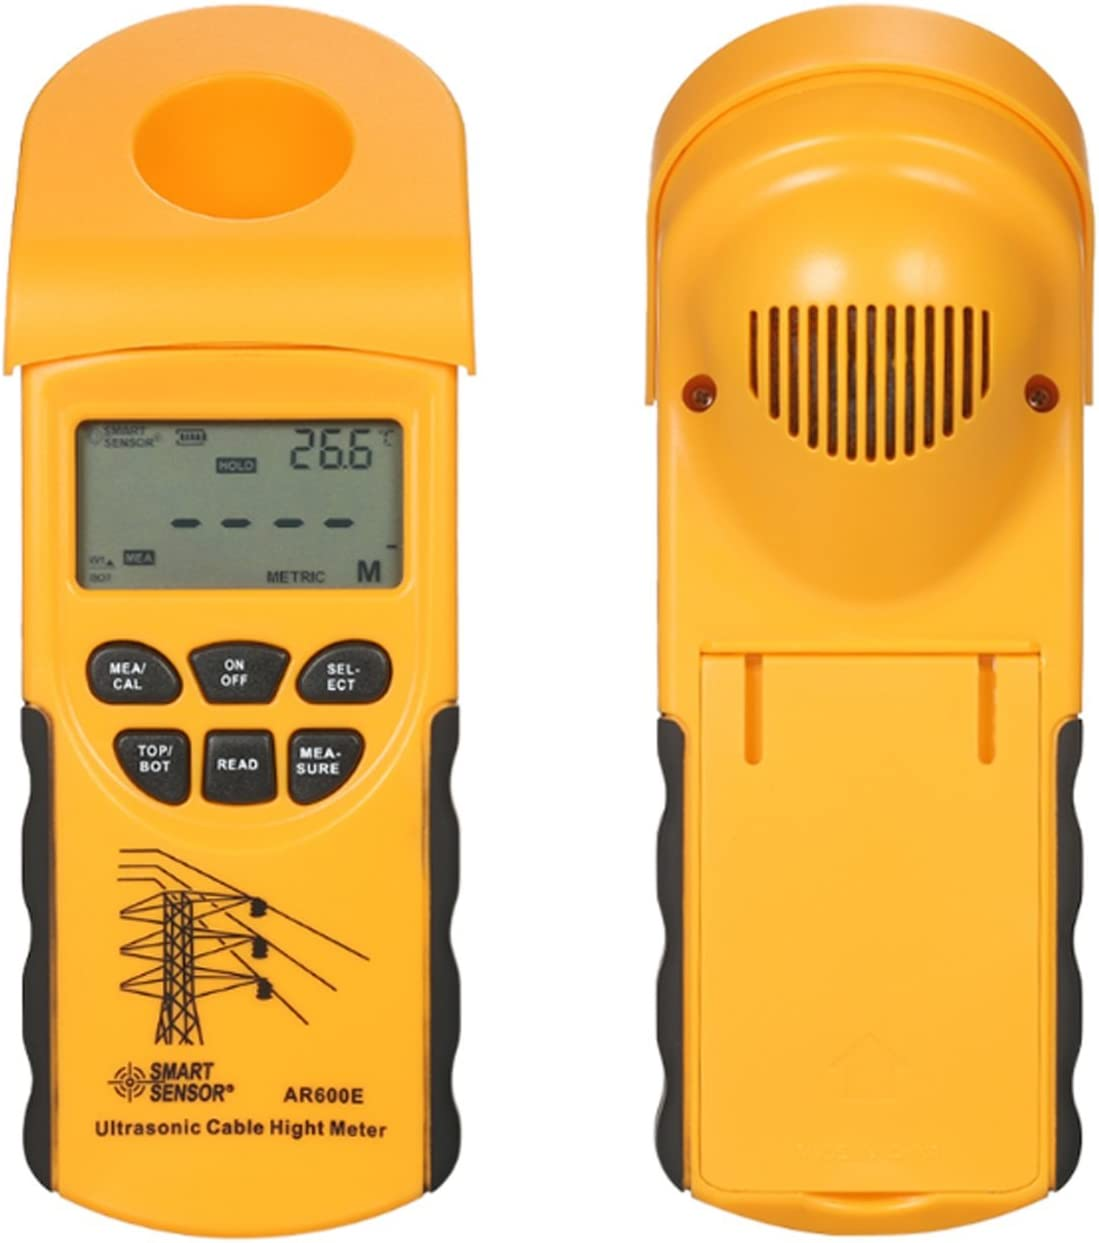 YEZIQ Digital Tester Ultrasonic Cable Cables Meter Height shop Super sale 6 Mea